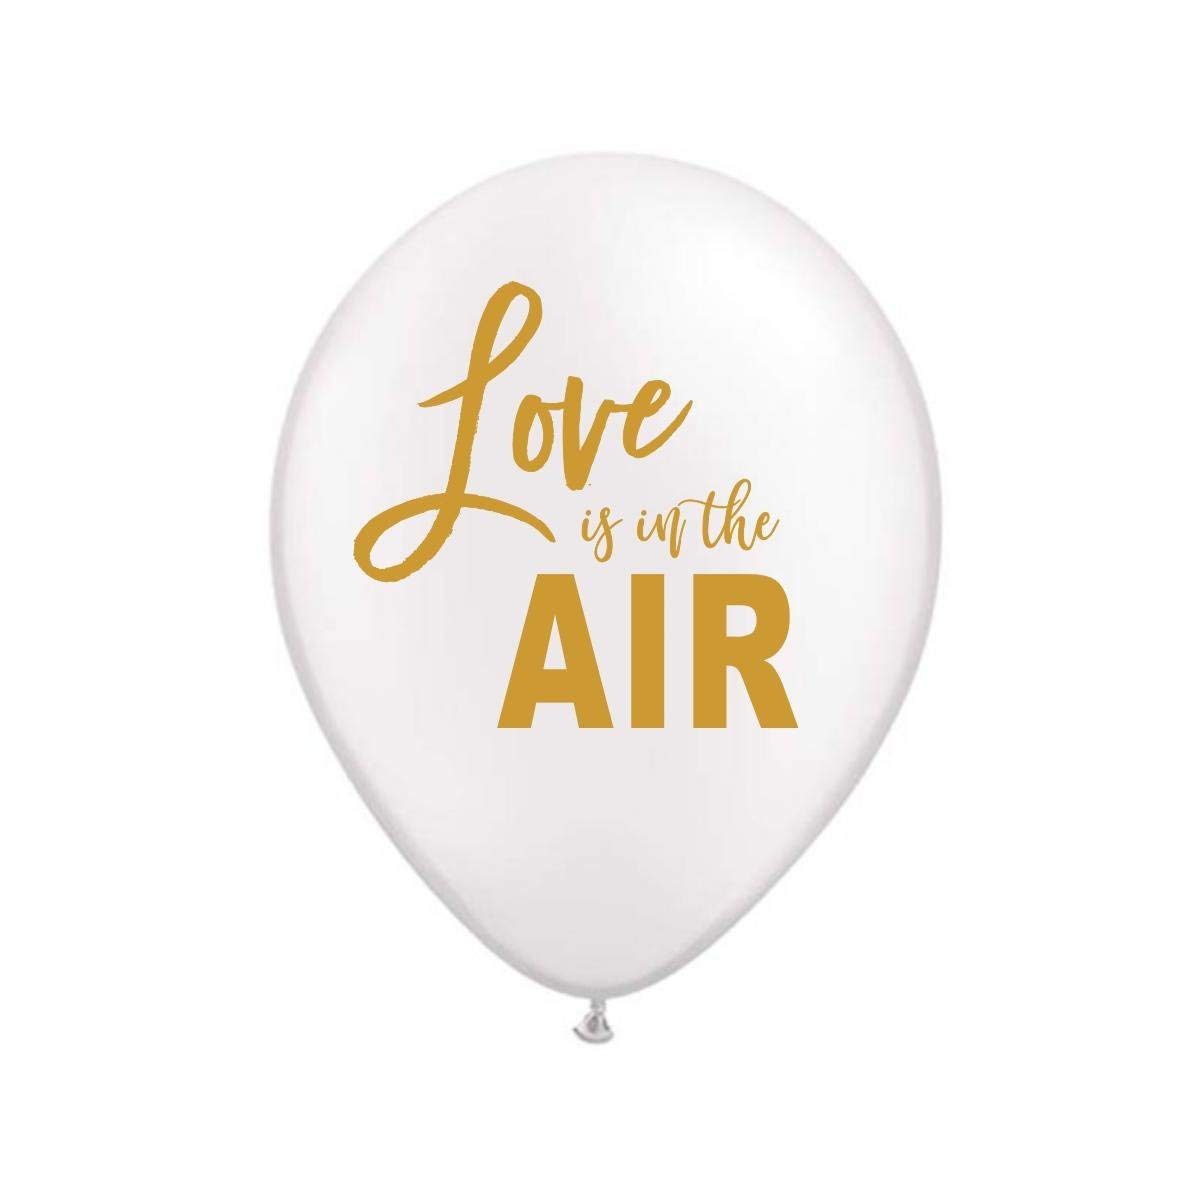 White Love is in the Air Balloons, Love is in the Air Balloons, Love is in the Air, Engagement Party Decoration, Bridal Shower Decoration, Valentine's Day Balloons, (Set of 3)